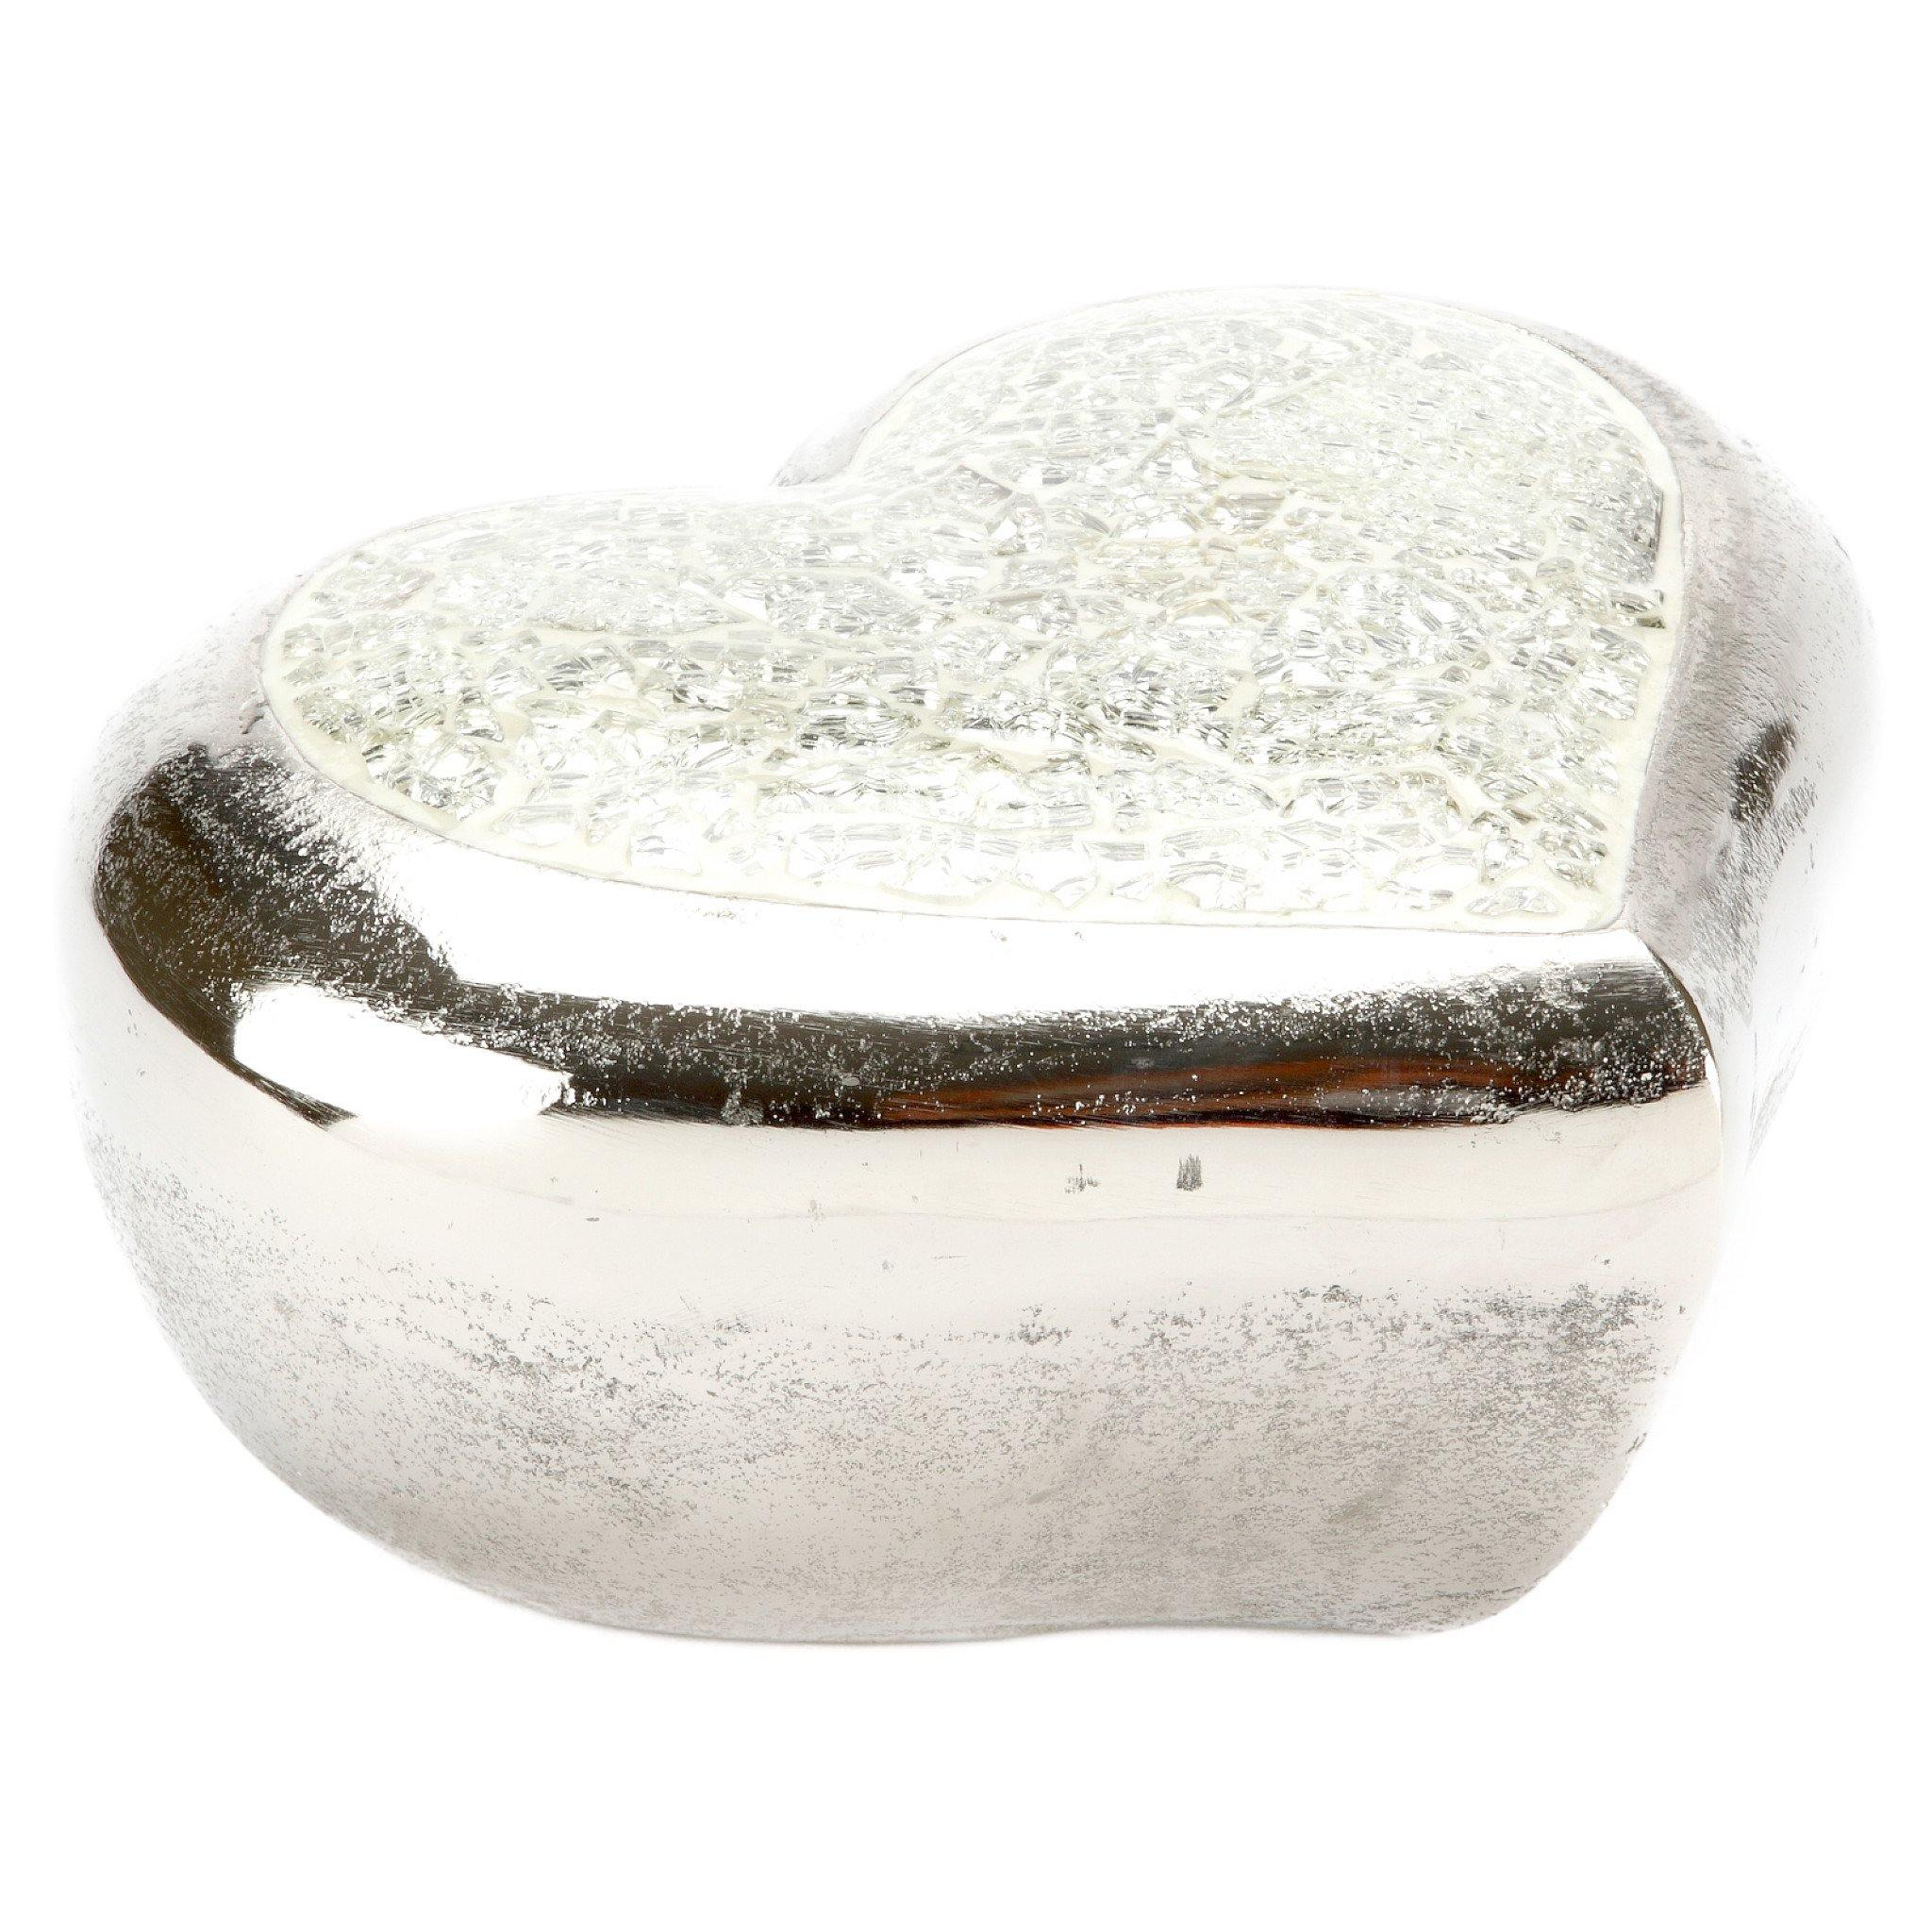 Heavenly Heart Cremation Ashes  Urn - Urns UK